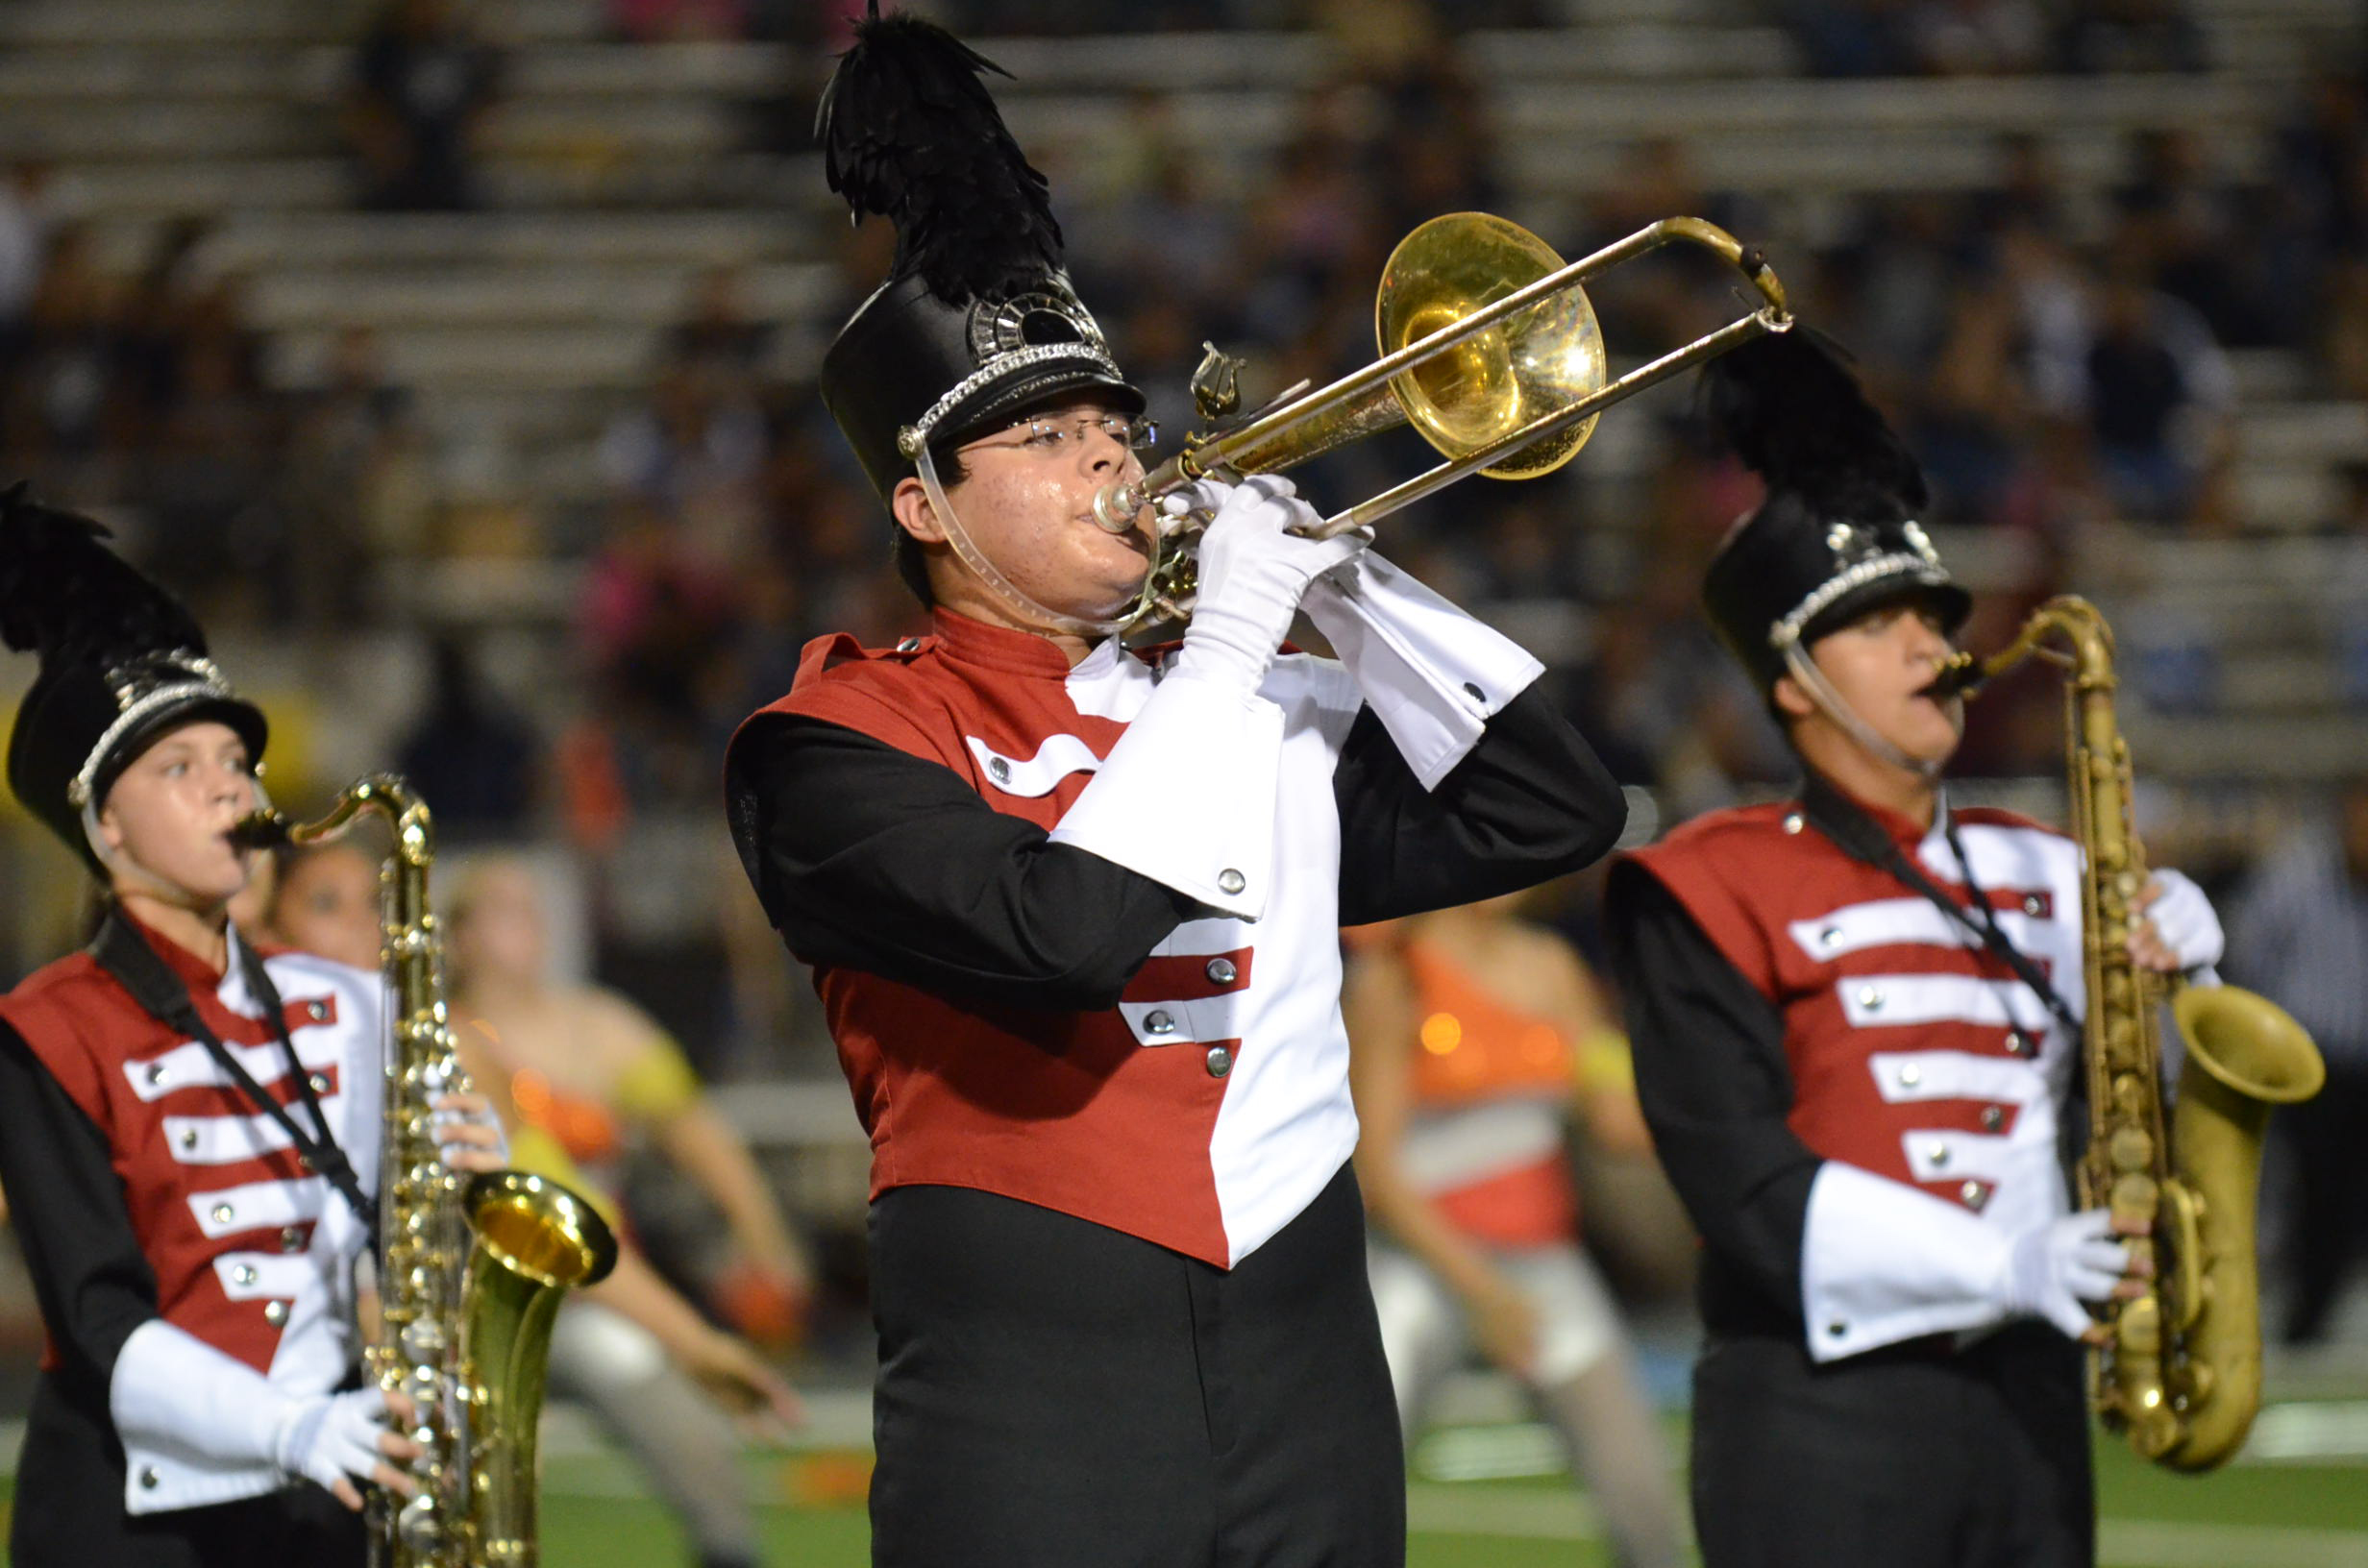 HHS Marching Band take two contests in one day